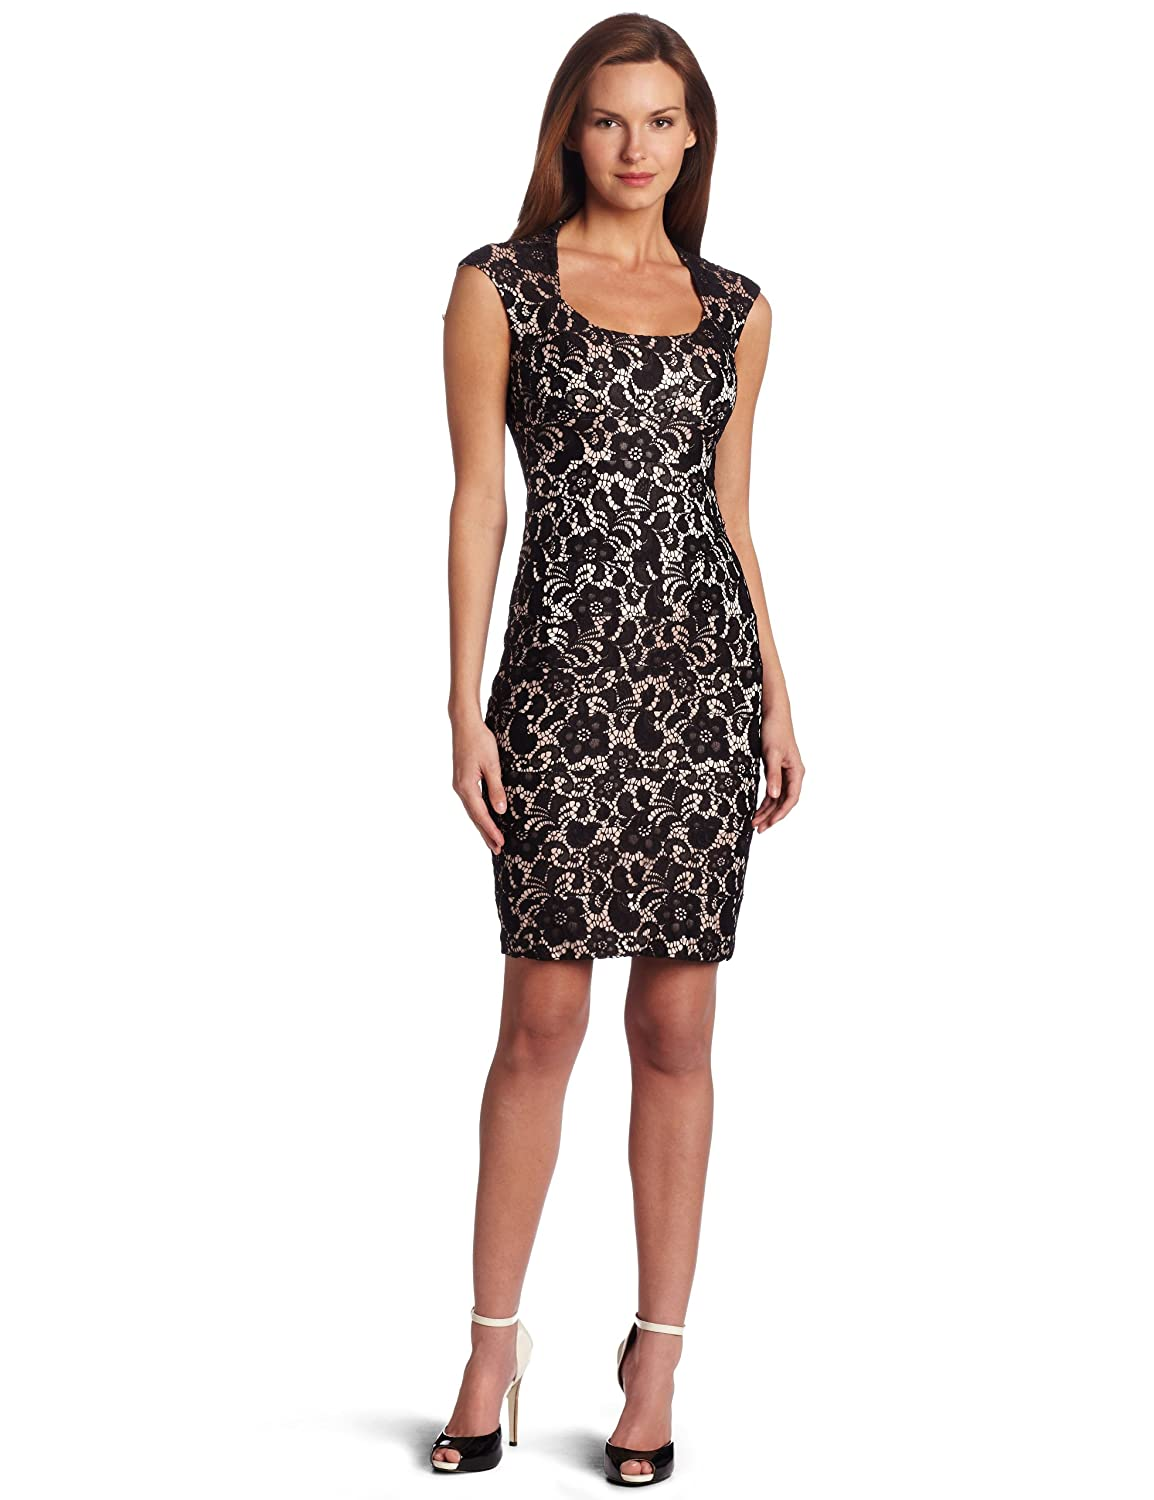 New Versace Womens Lace Dress  Oooxe